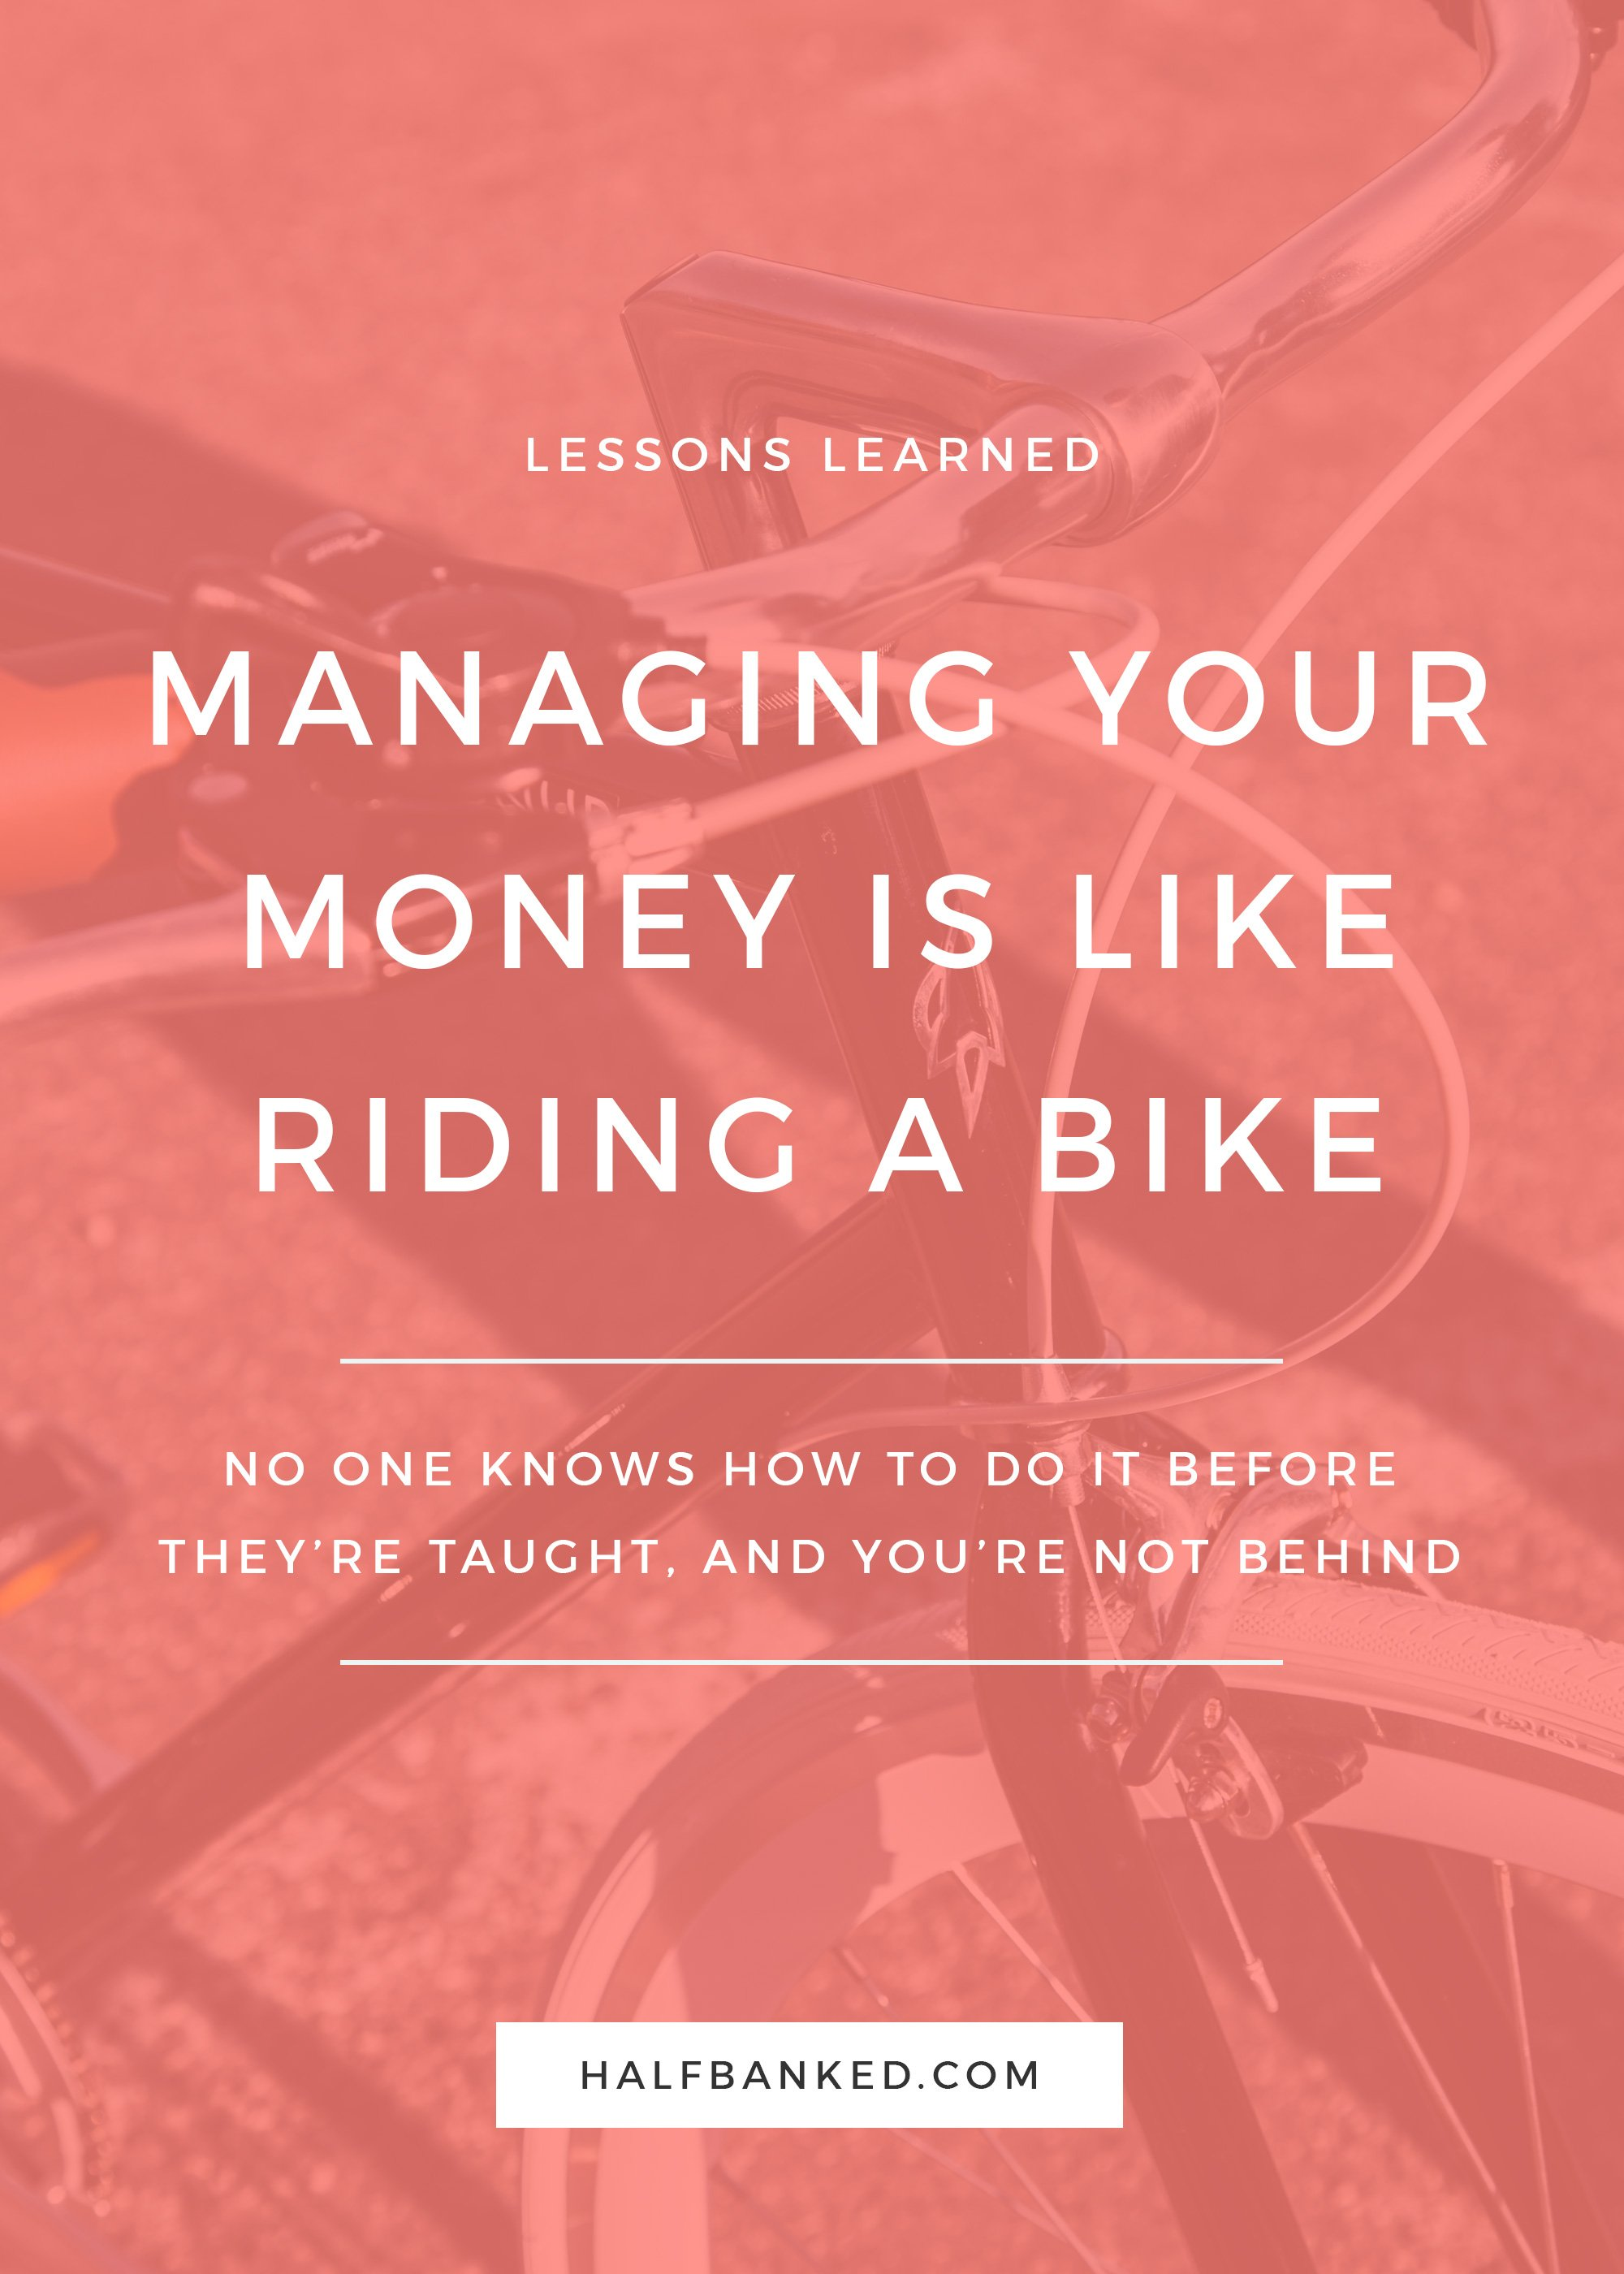 Managing your money can seem intimidating, just like learning how to ride a bike. But you can totally do it - and you don't have to know how to do it just yet.